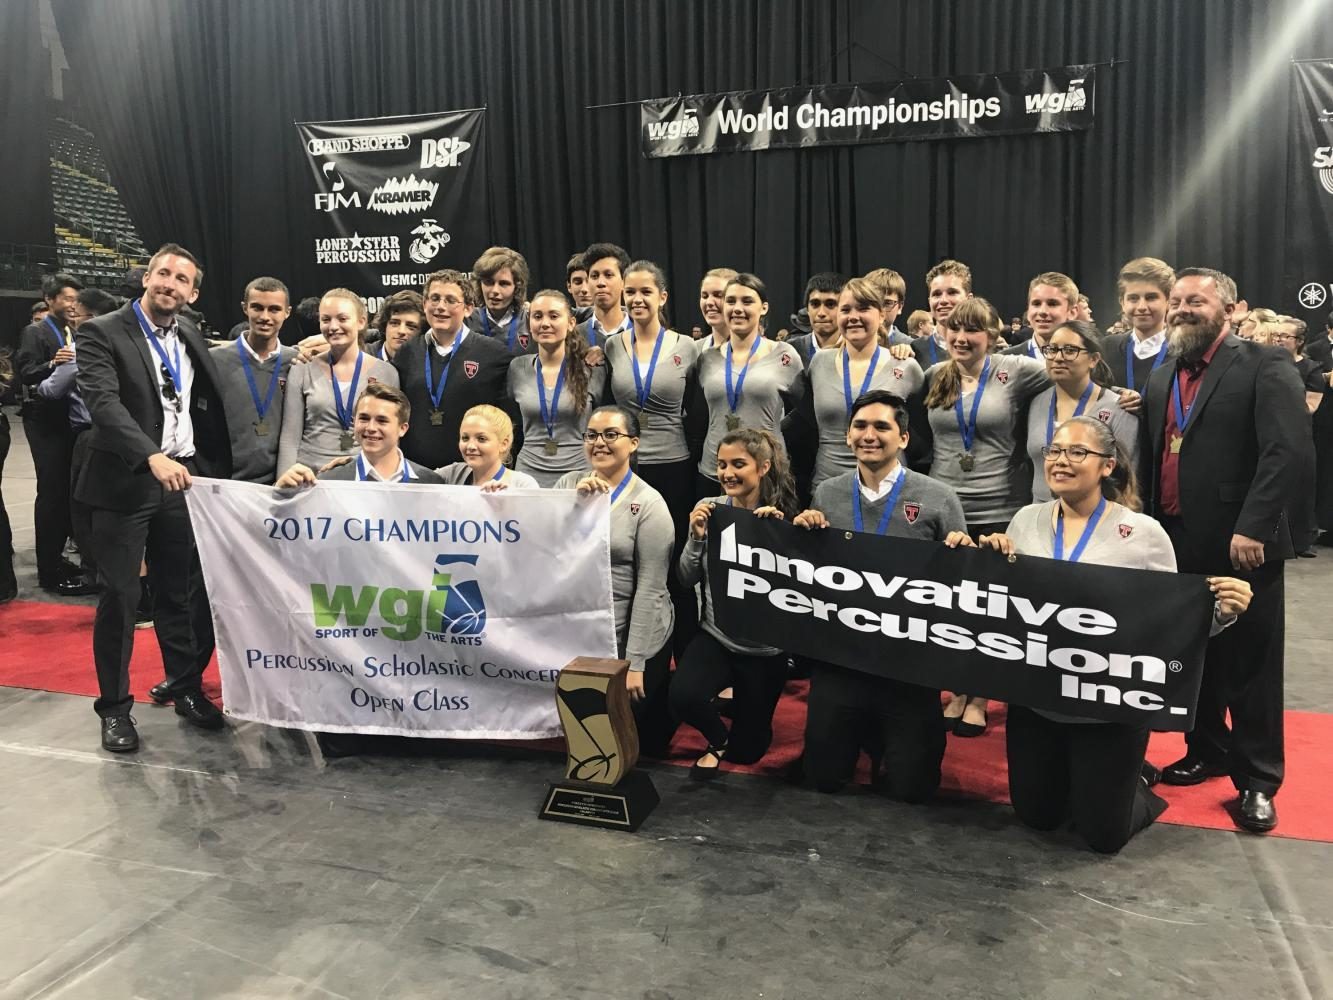 The+Winter+Percussion+Group+Accepting%2F+Taking+a+picture+of+there+accomplishment+of+receiving+1st+place+at+an+International+Competition.+